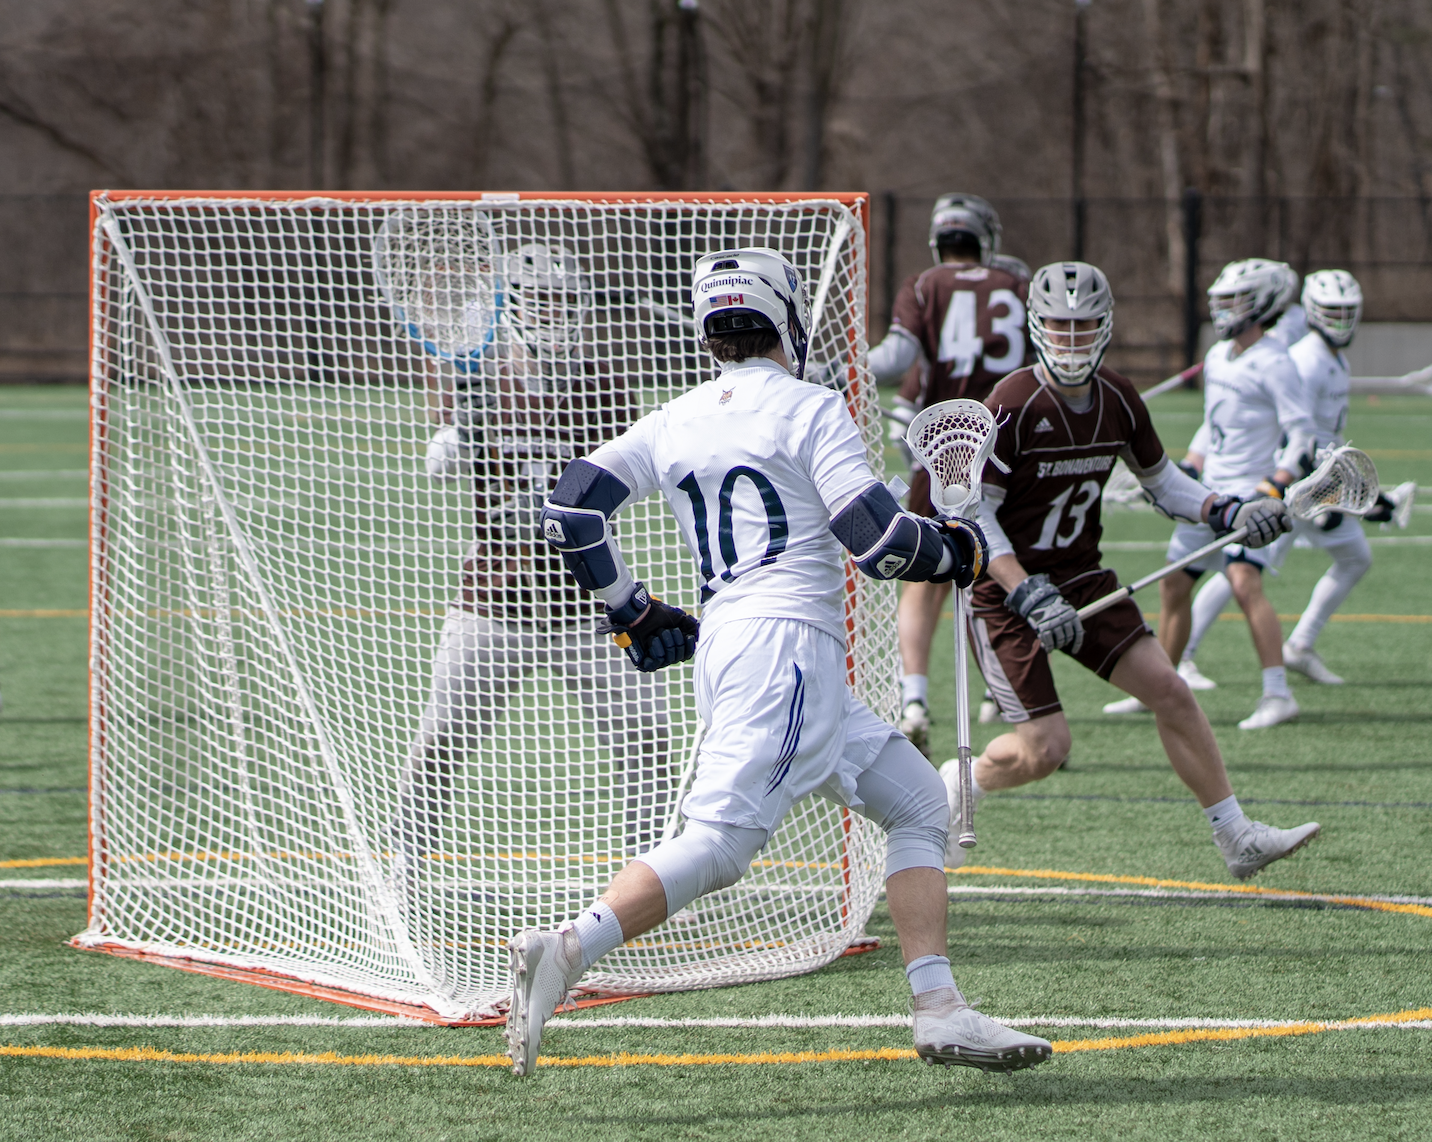 Quinnipiac men's lacrosse makes it five straight wins by taking down St. Bonaventure